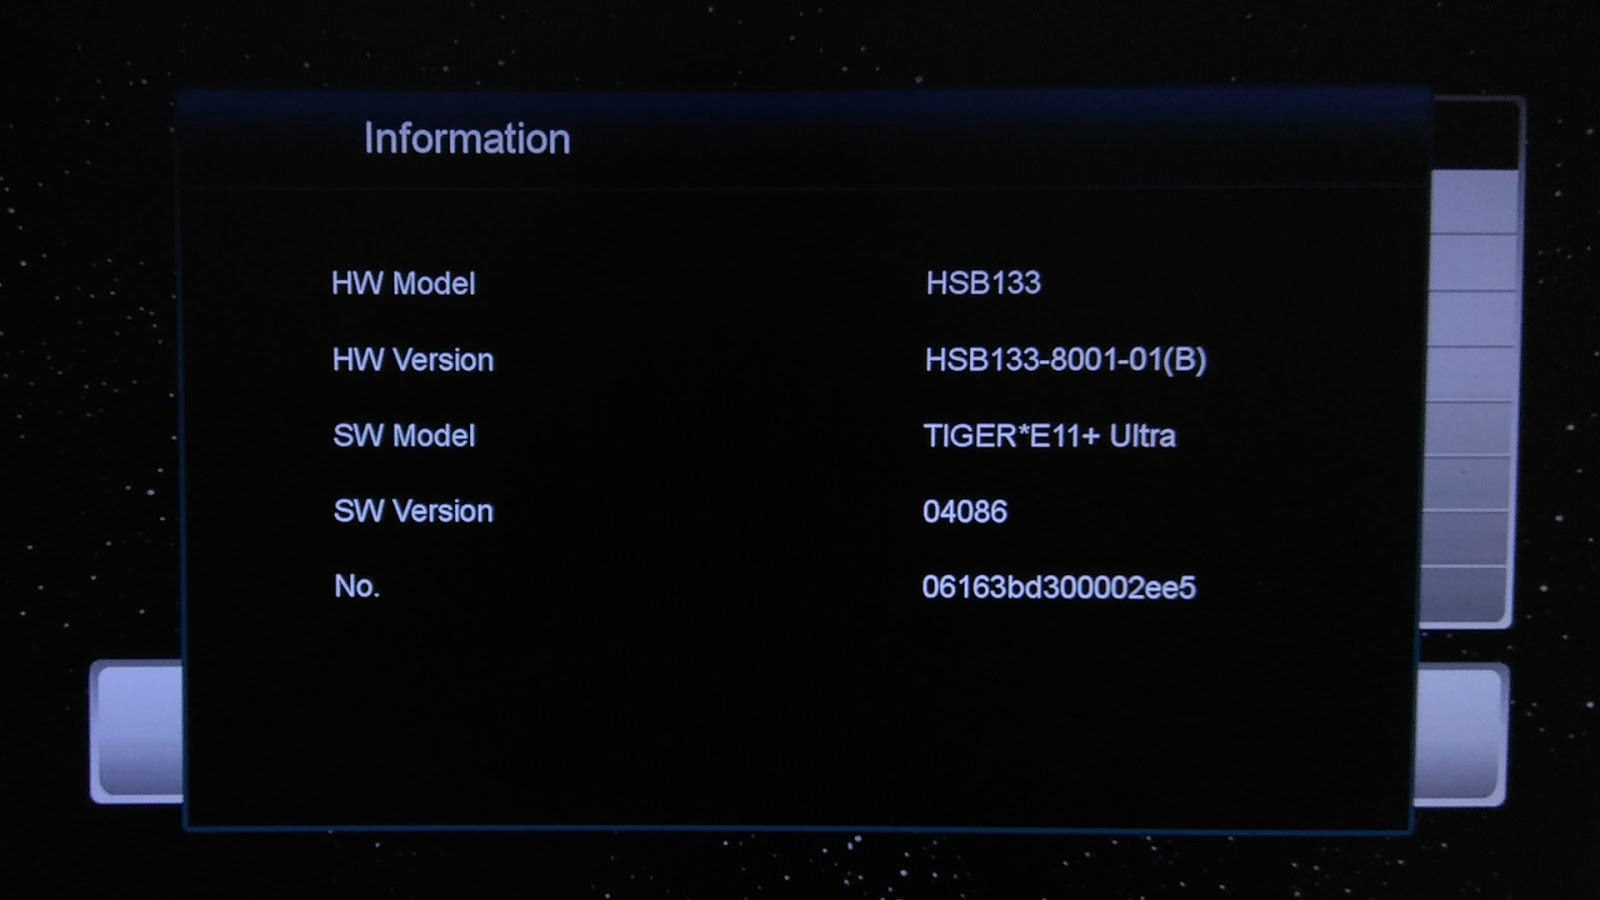 Software Tiger Star E11 Plus Ultra New Update Firmware